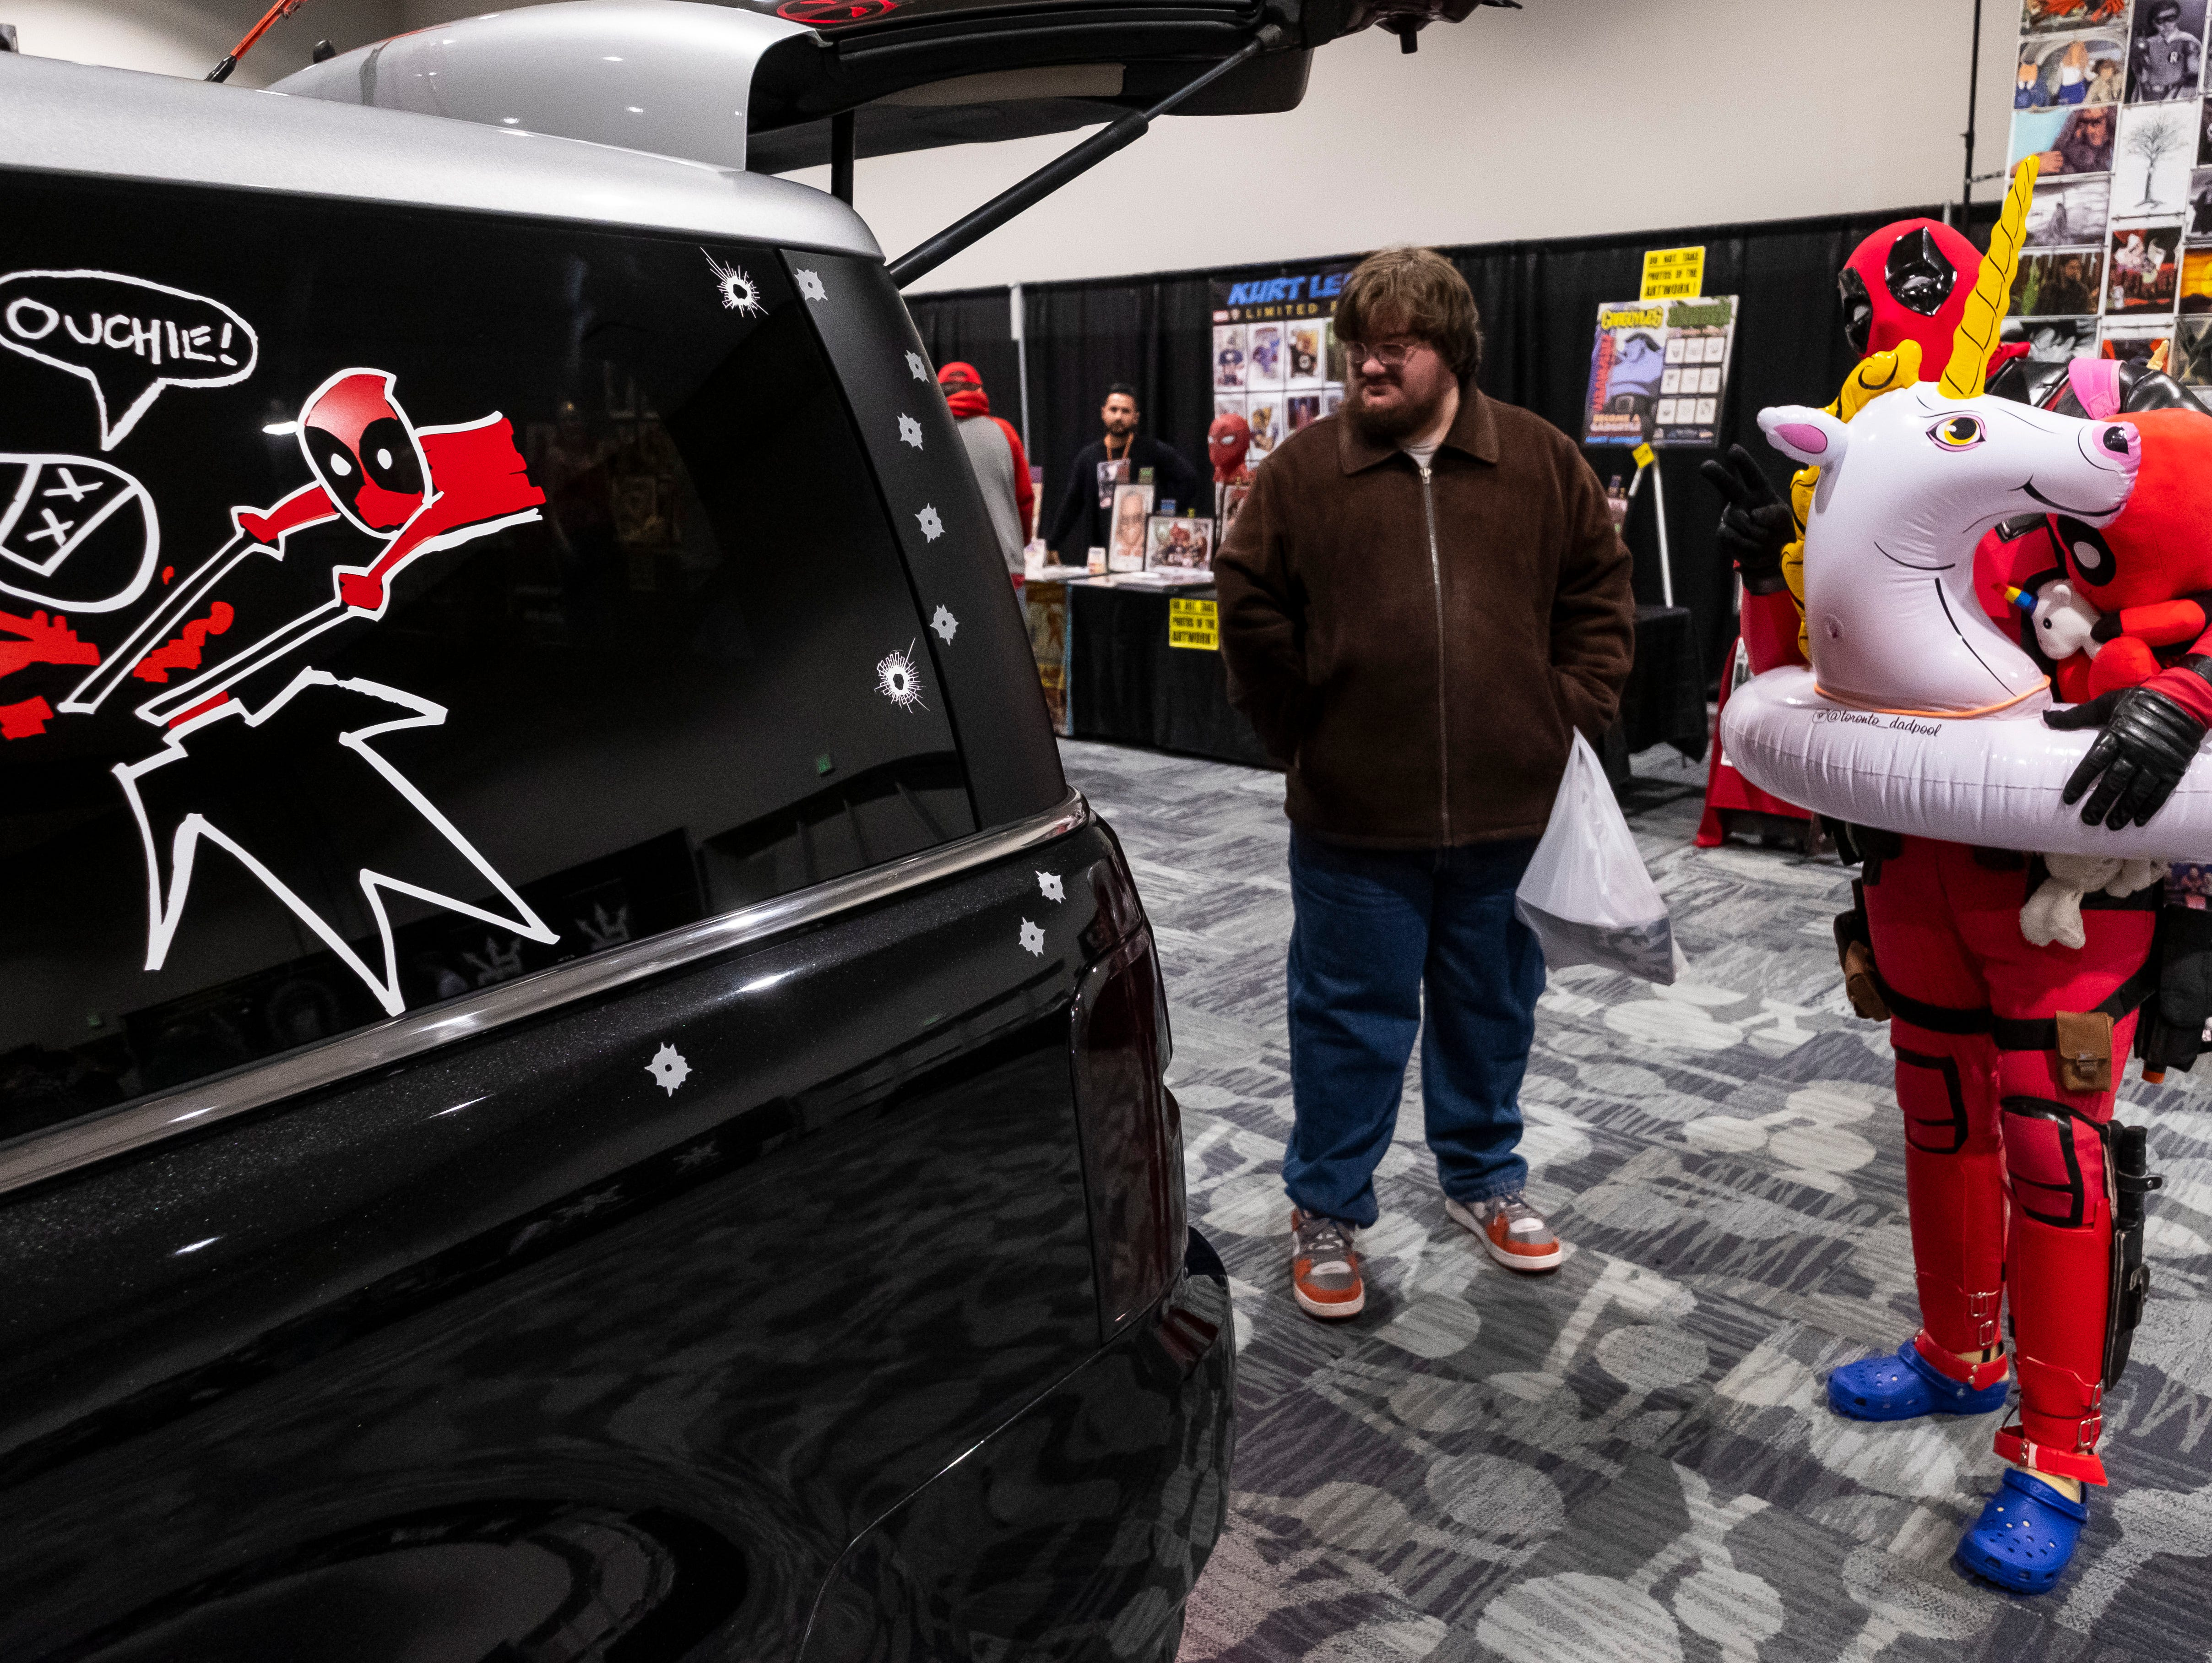 Trevor Lyn, also known as the Toronto Dadpool, right, strikes a pose while Edward Gibson, of St. Clair, admires the Dadpoolmobile Saturday, March 30, 2019 during Blue Water International Comic-Con.